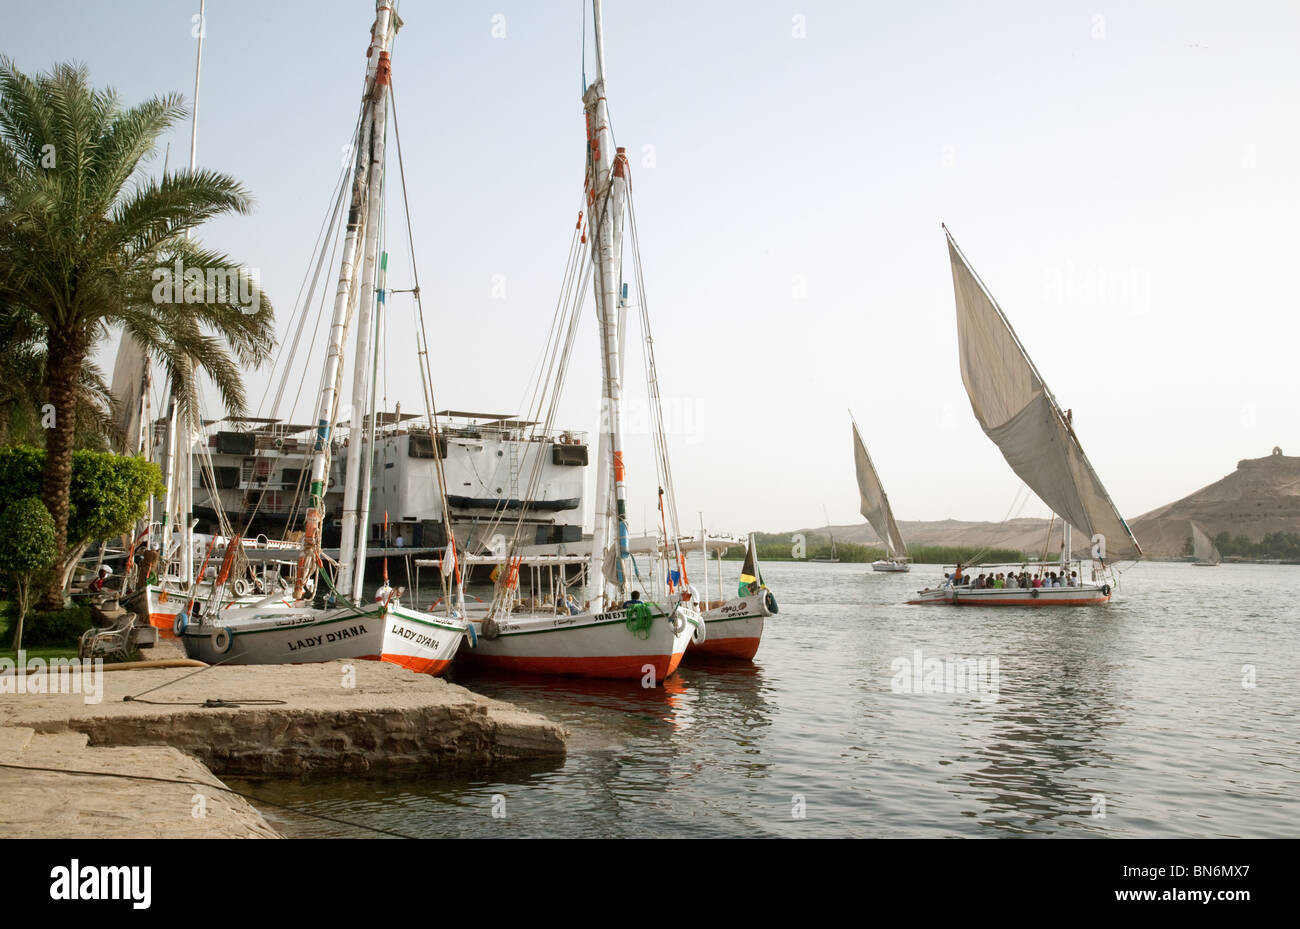 Feluccas on the river Nile at Aswan, Upper Egypt - Stock Image